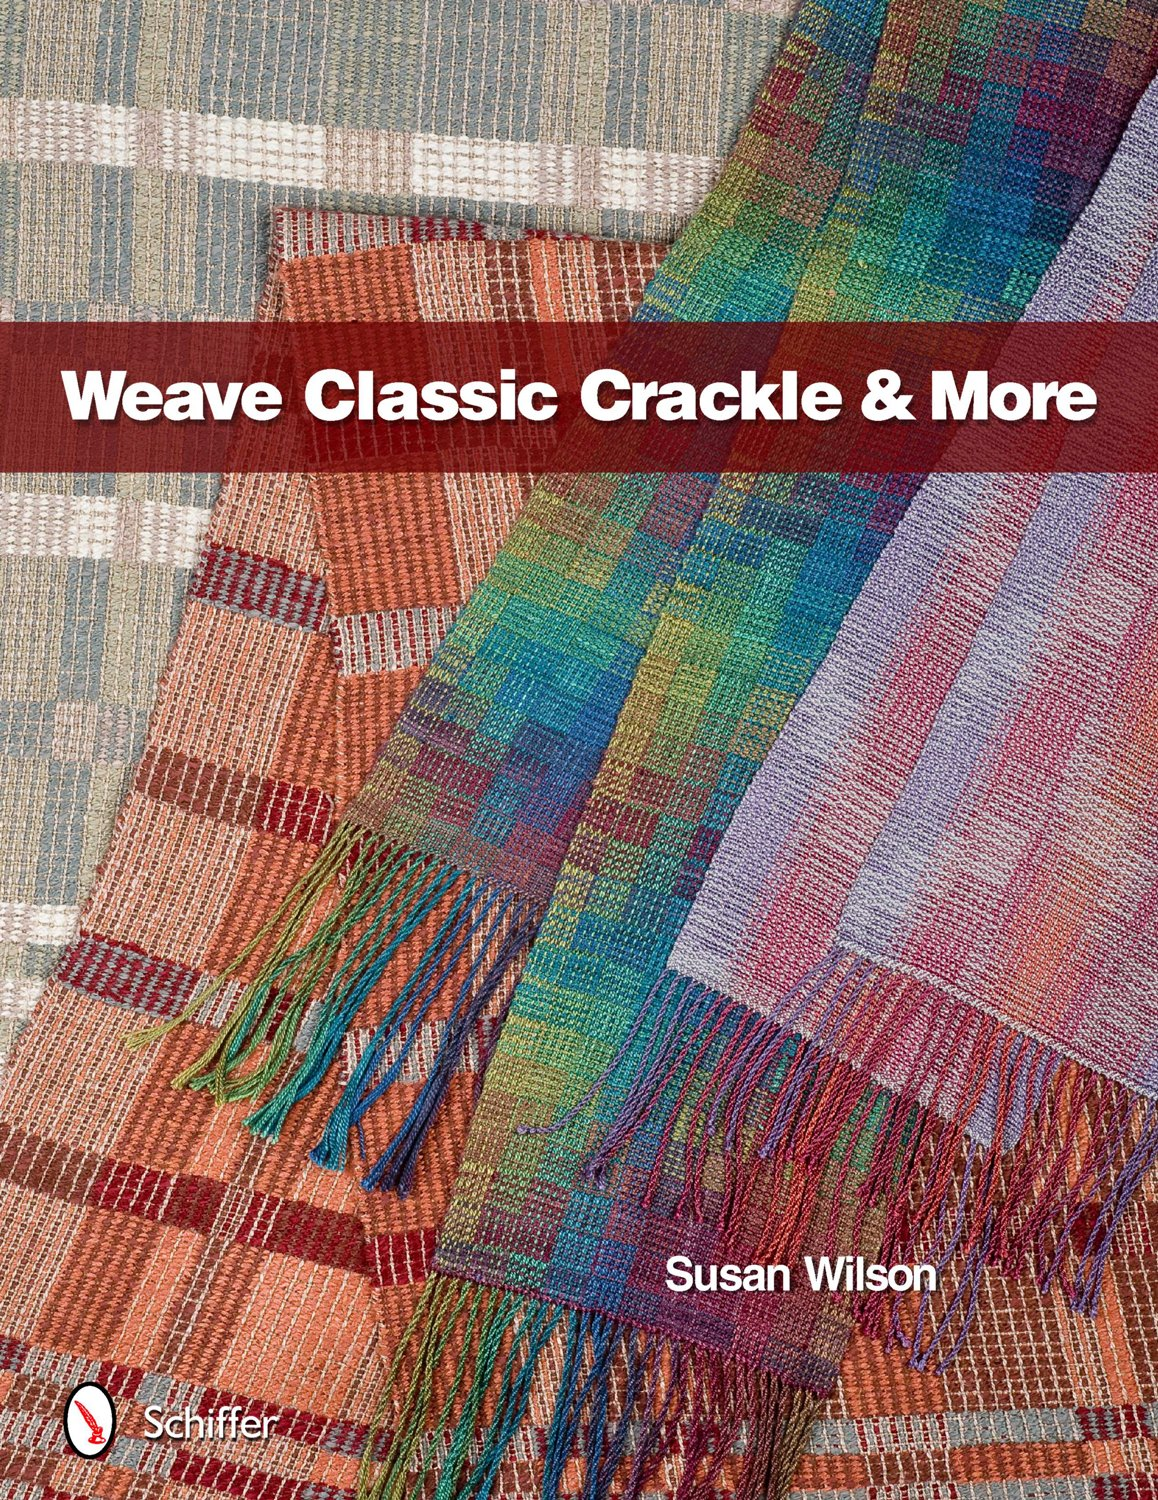 weave-classic-crackle-more